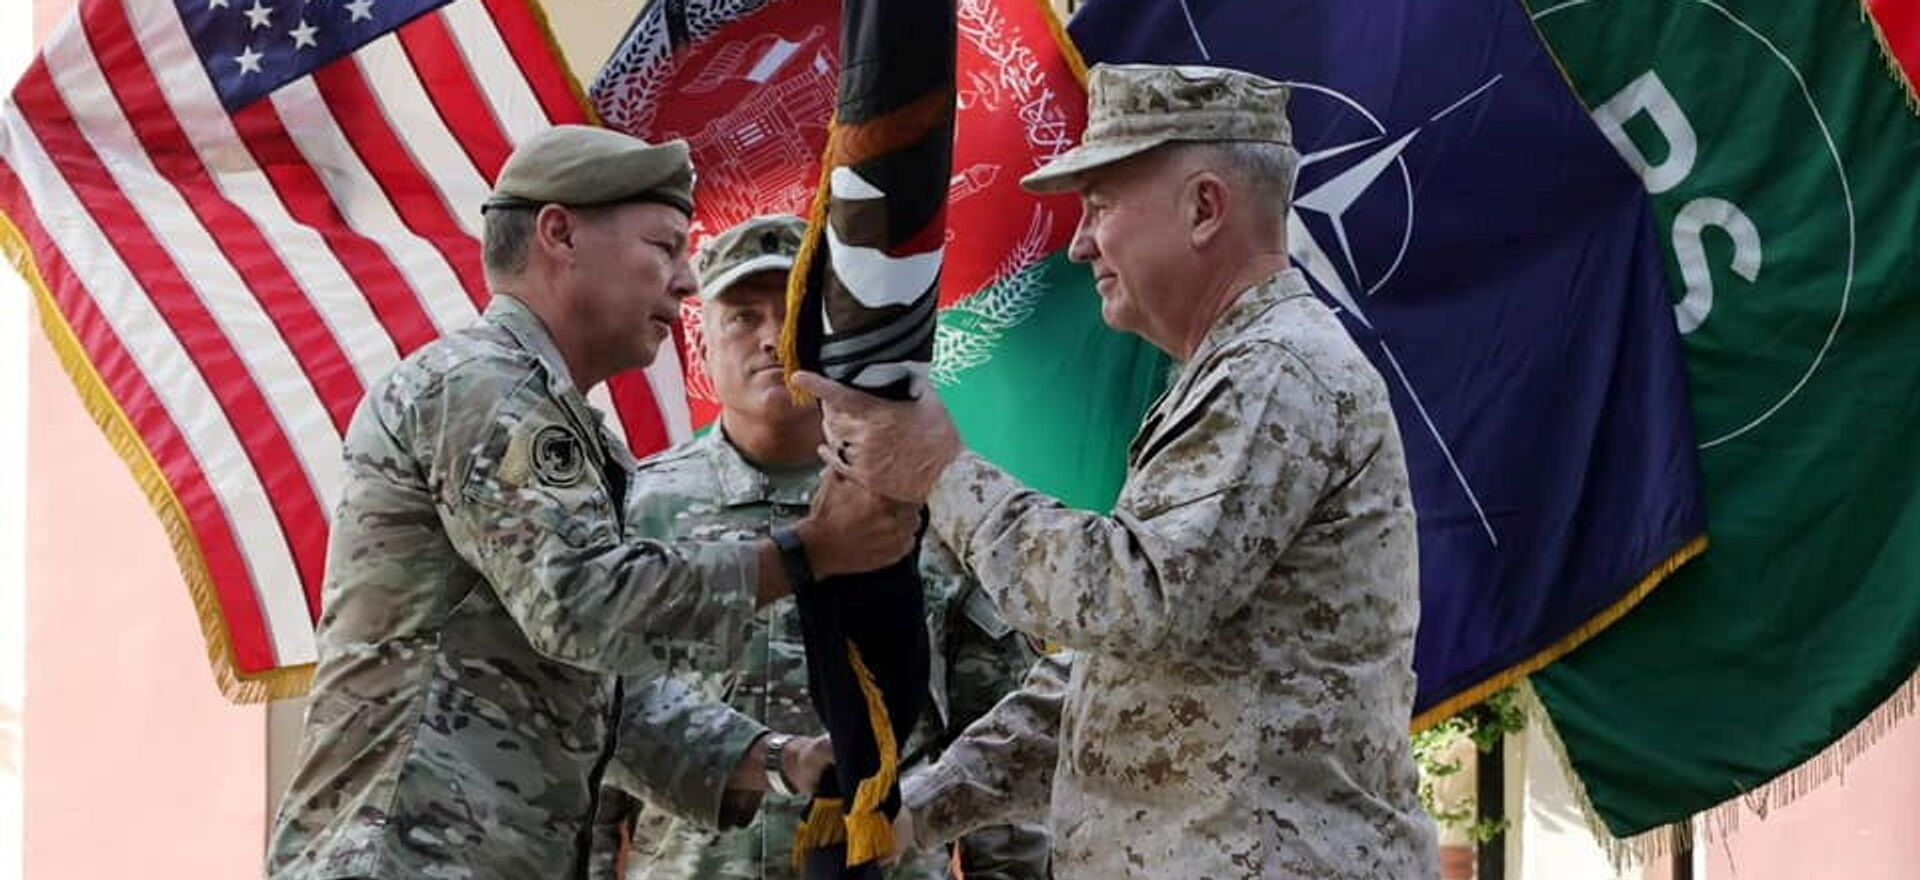 General Austin Scott Miller, commander of U.S. forces and NATO's Resolute Support Mission, hands over his command to U.S. Marine General Kenneth McKenzie, during a ceremony in Kabul, Afghanistan July 12, 2021 - Sputnik International, 1920